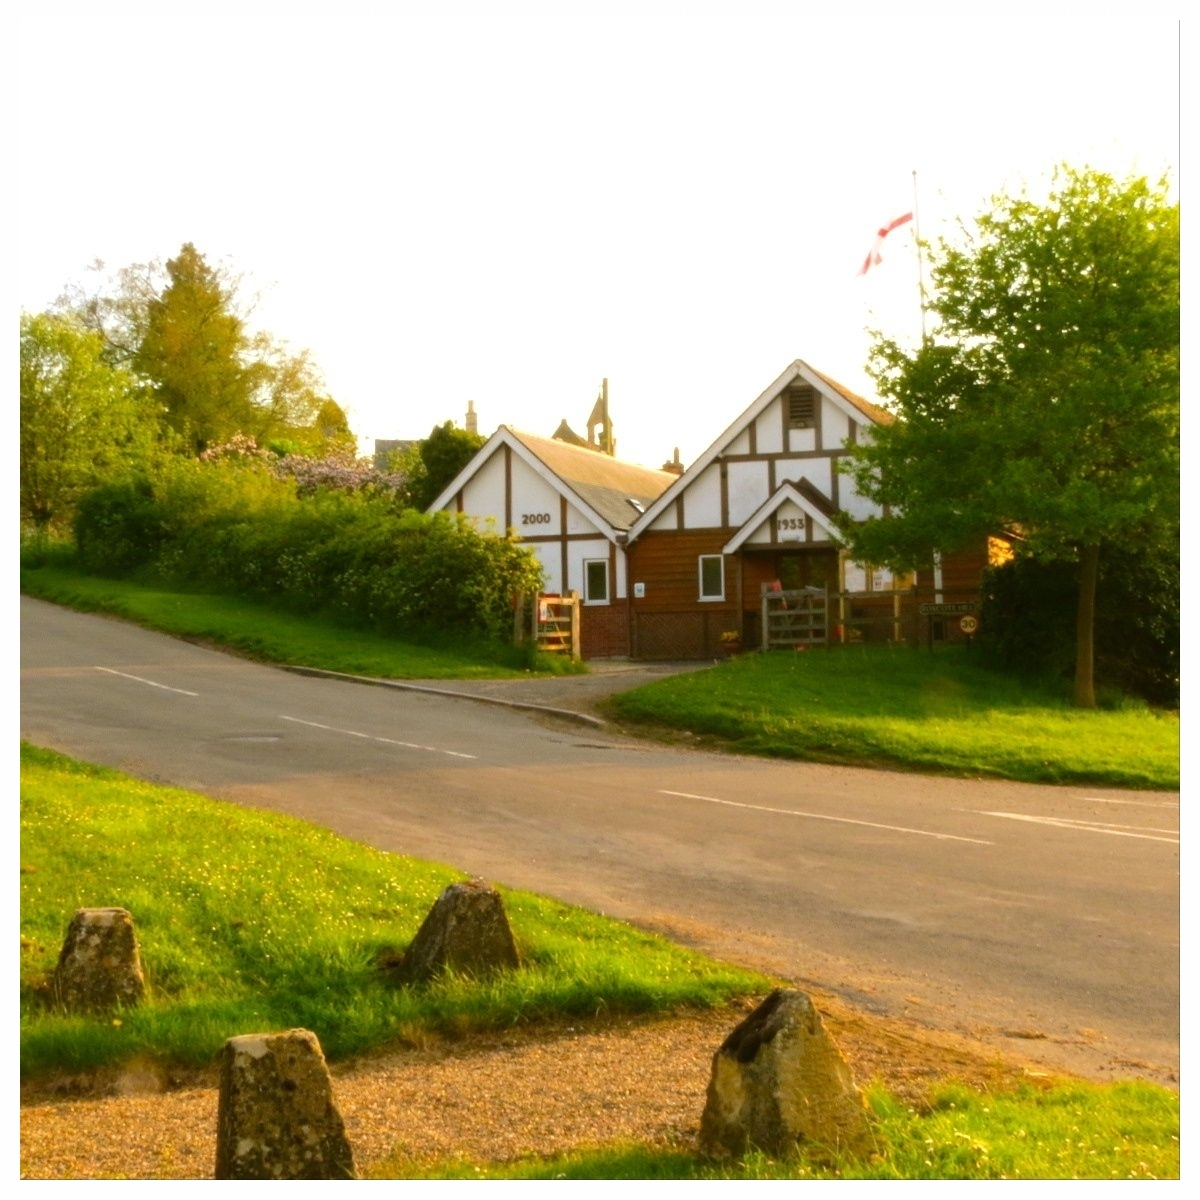 - Ilmington Village Hall from the foot of Foxcote Hill